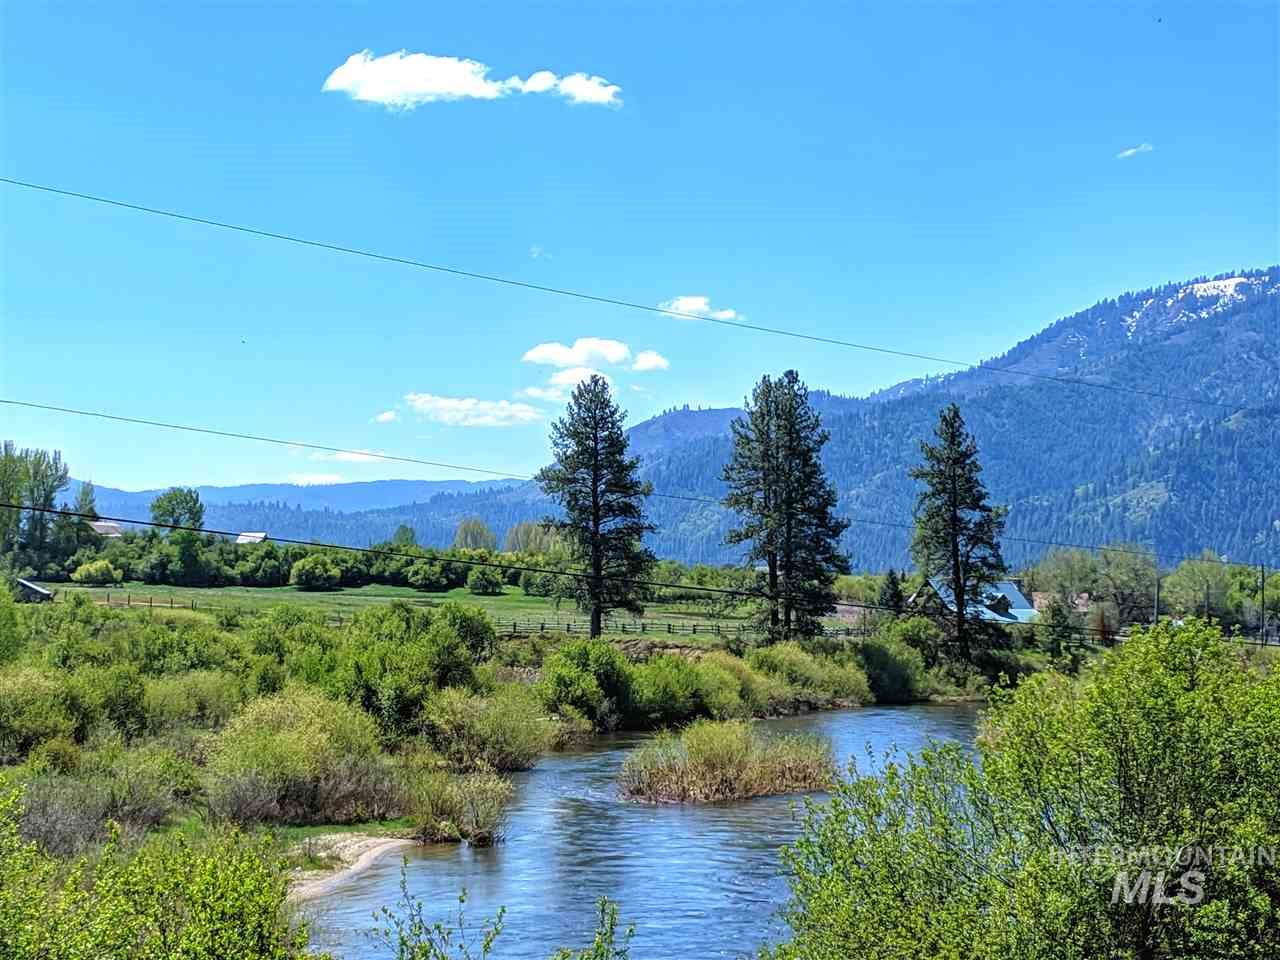 677 S Middlefork Road, Garden Valley, Idaho 83622, Land For Sale, Price $100,000, 98726072